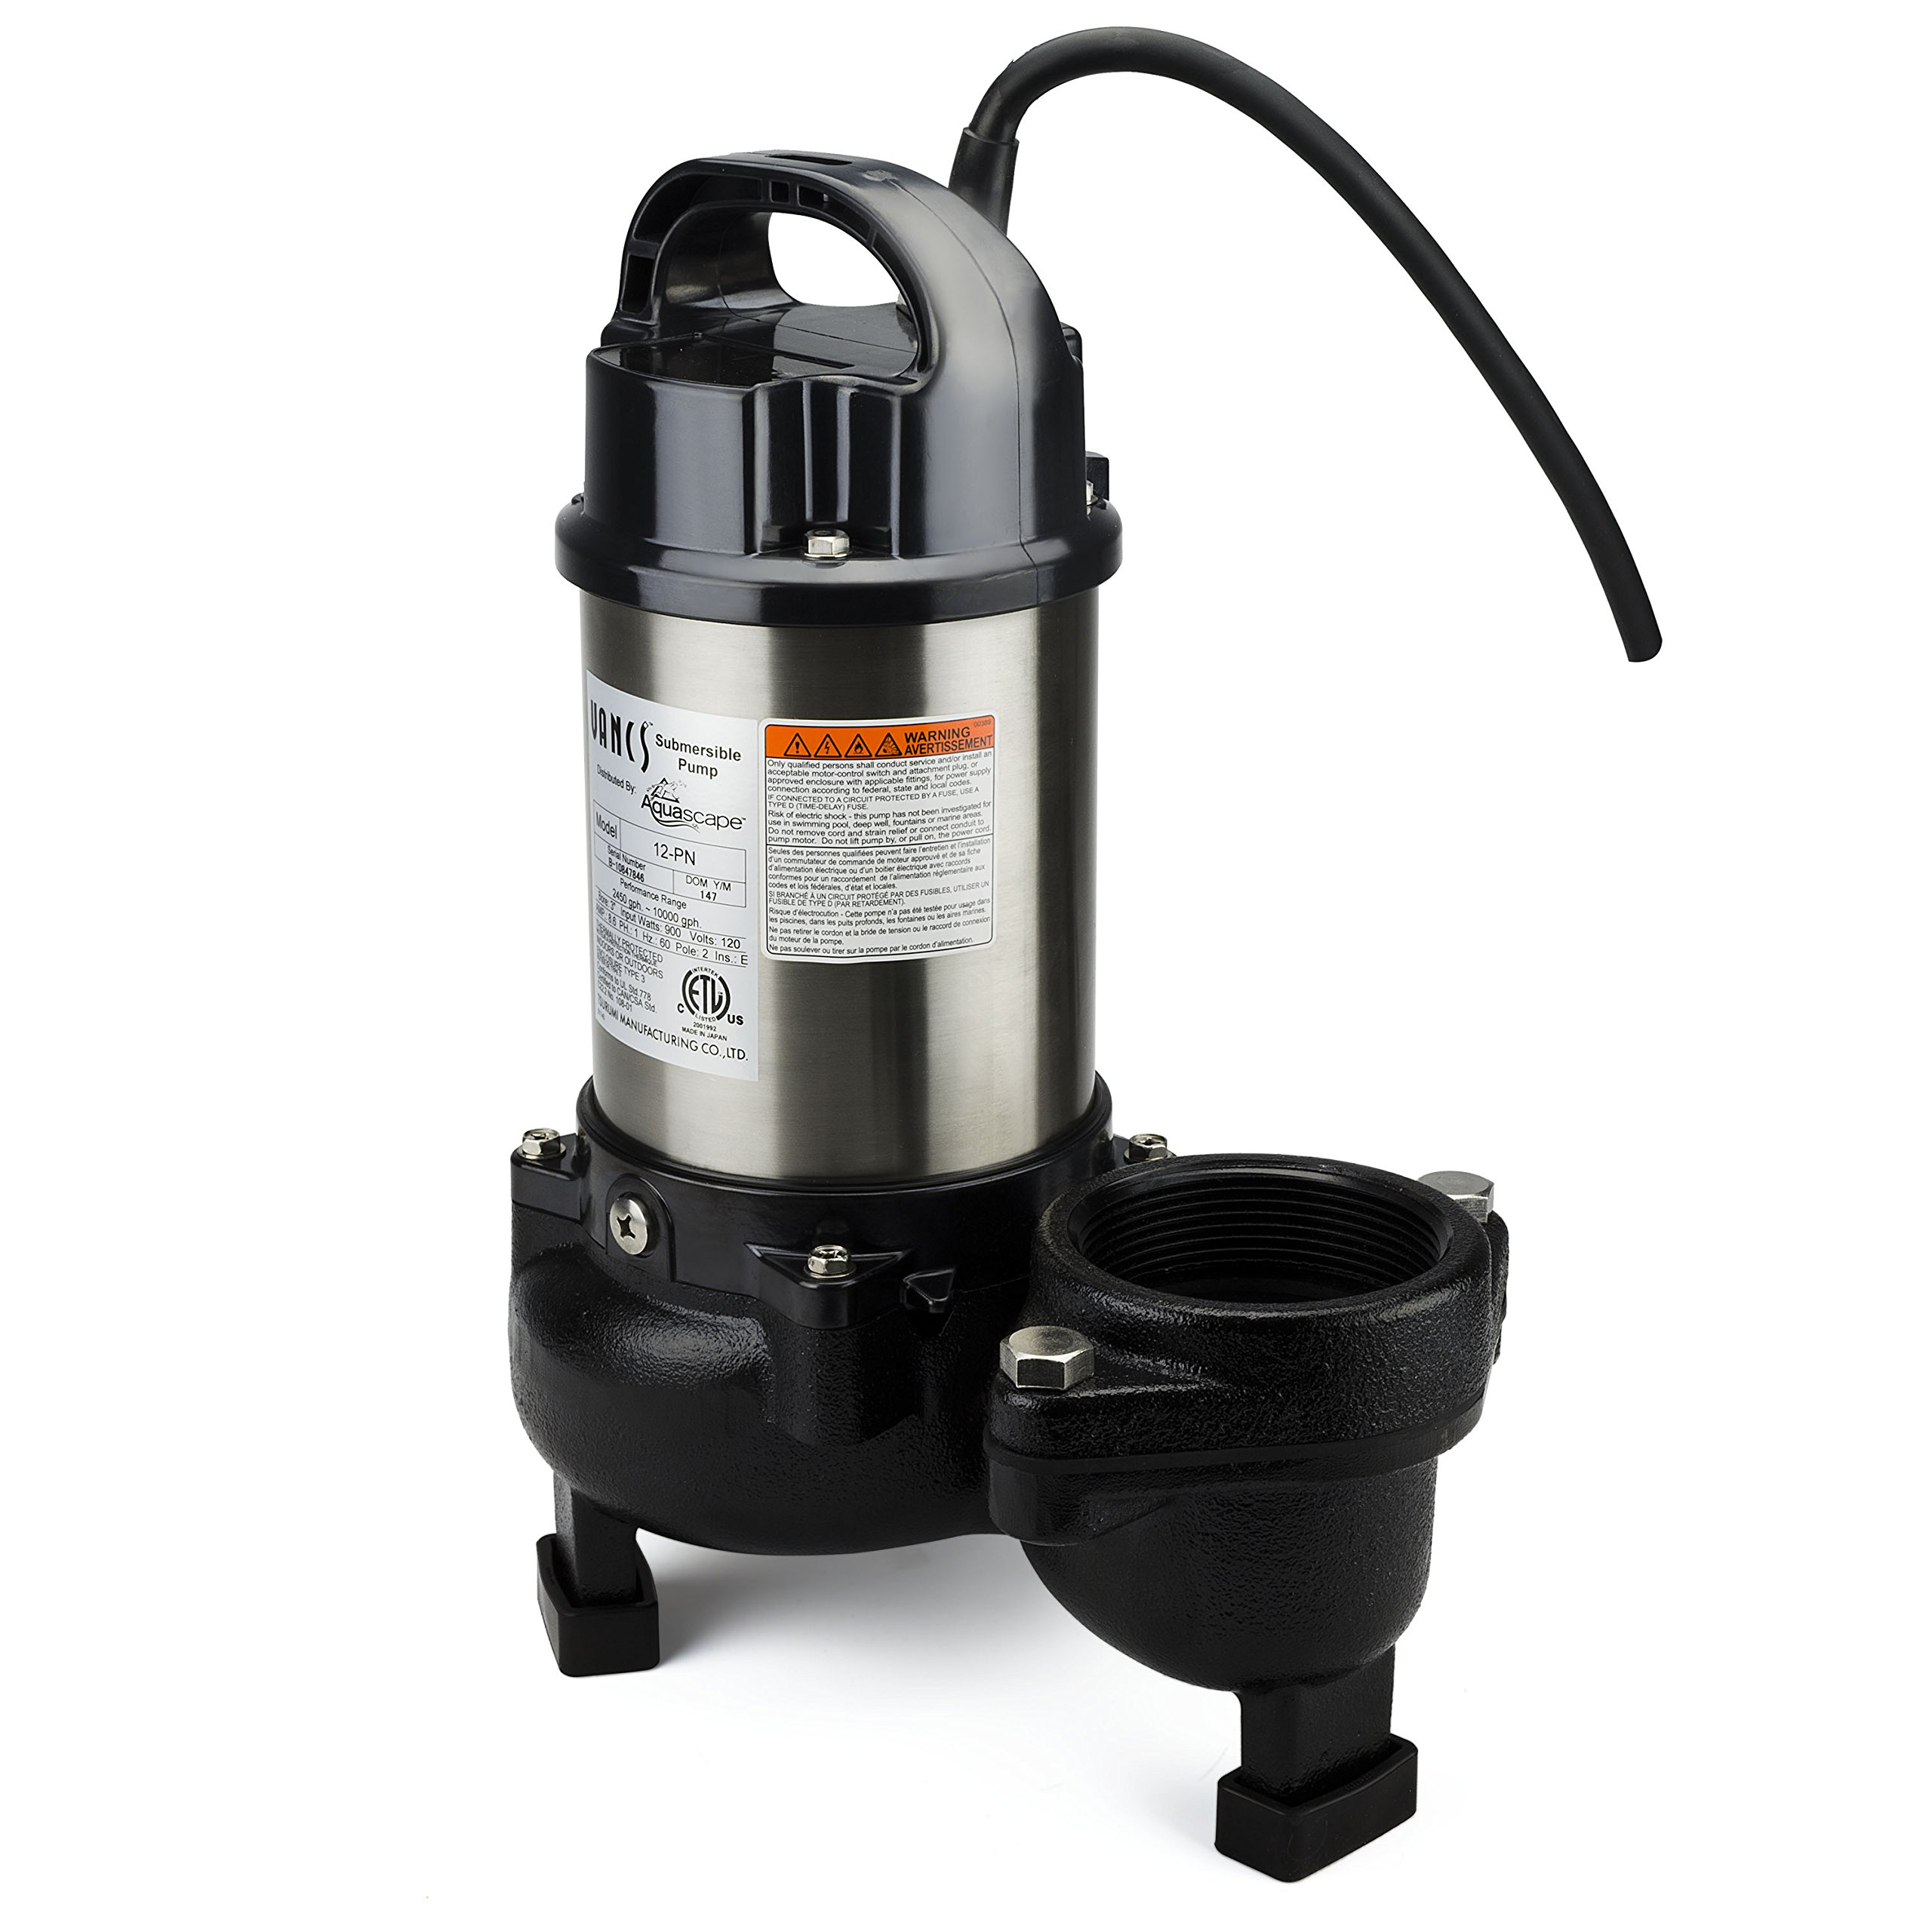 Aquascape 30391 Tsurumi 12PN Submersible Pump for Ponds, Skimmer Filters, and Pondless Waterfalls, 10,000 GPH by Tsurumi (Image #3)